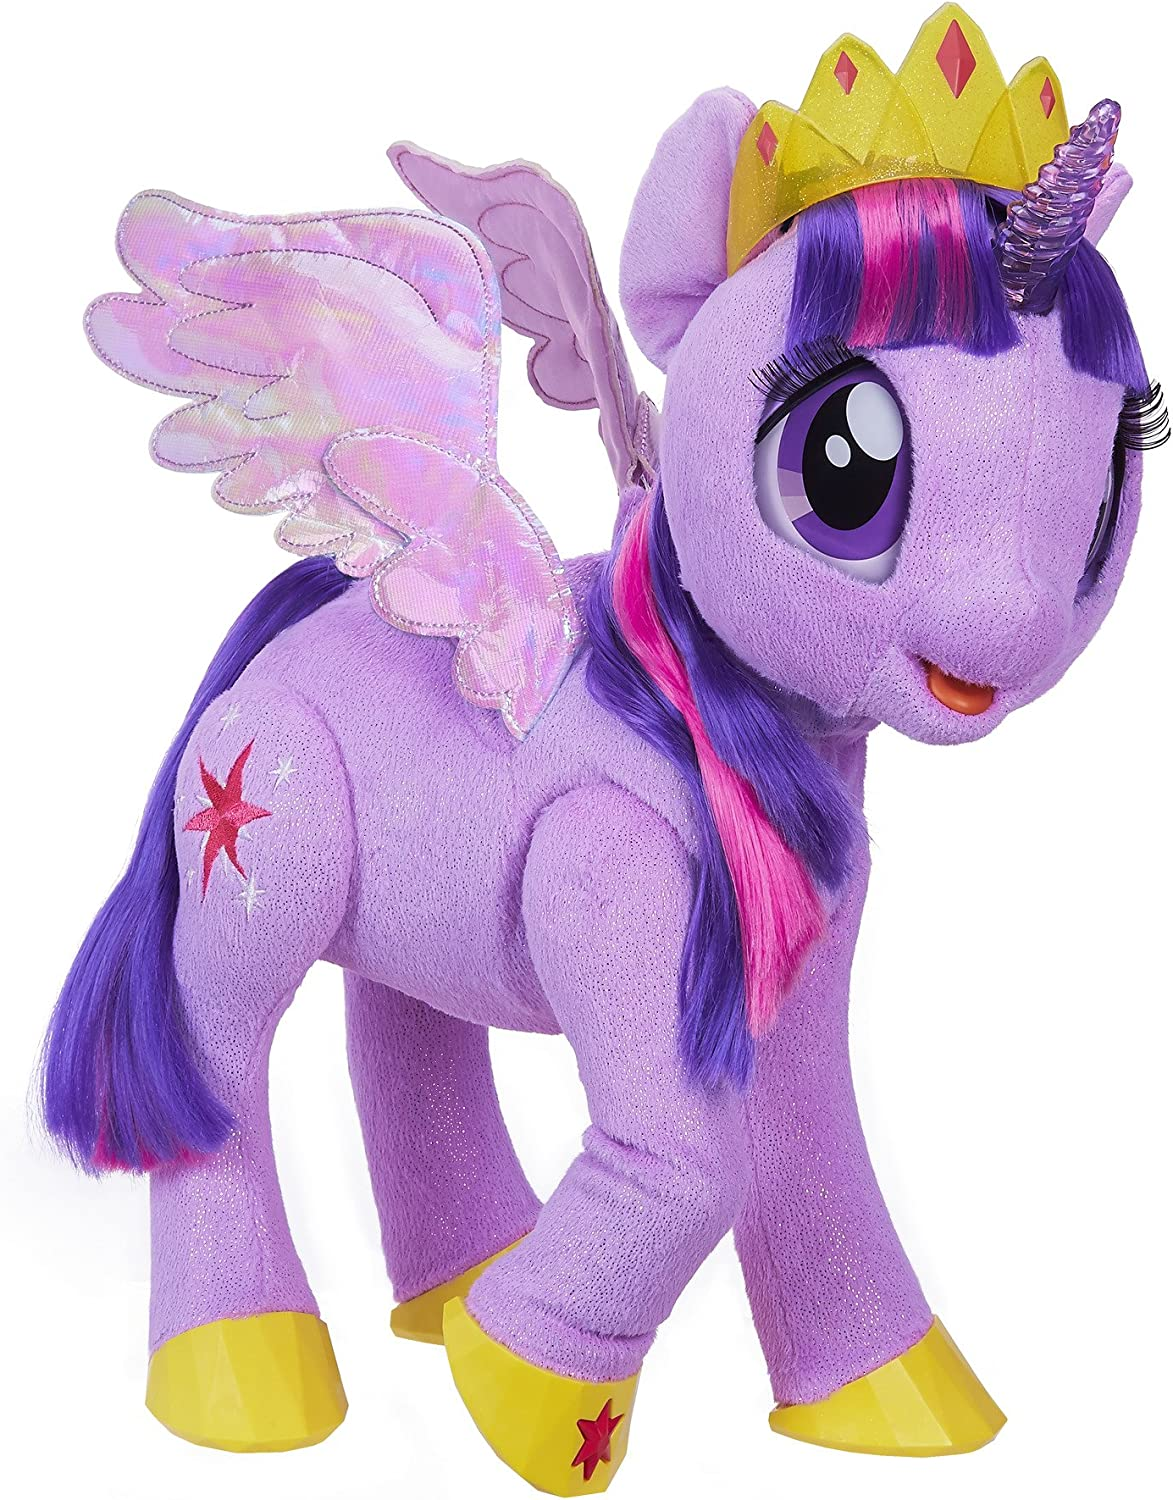 Amazon Com My Little Pony Movie Toy Magical Princess Twilight Sparkle Interactive Plush Says 90 Phrases Toys Games